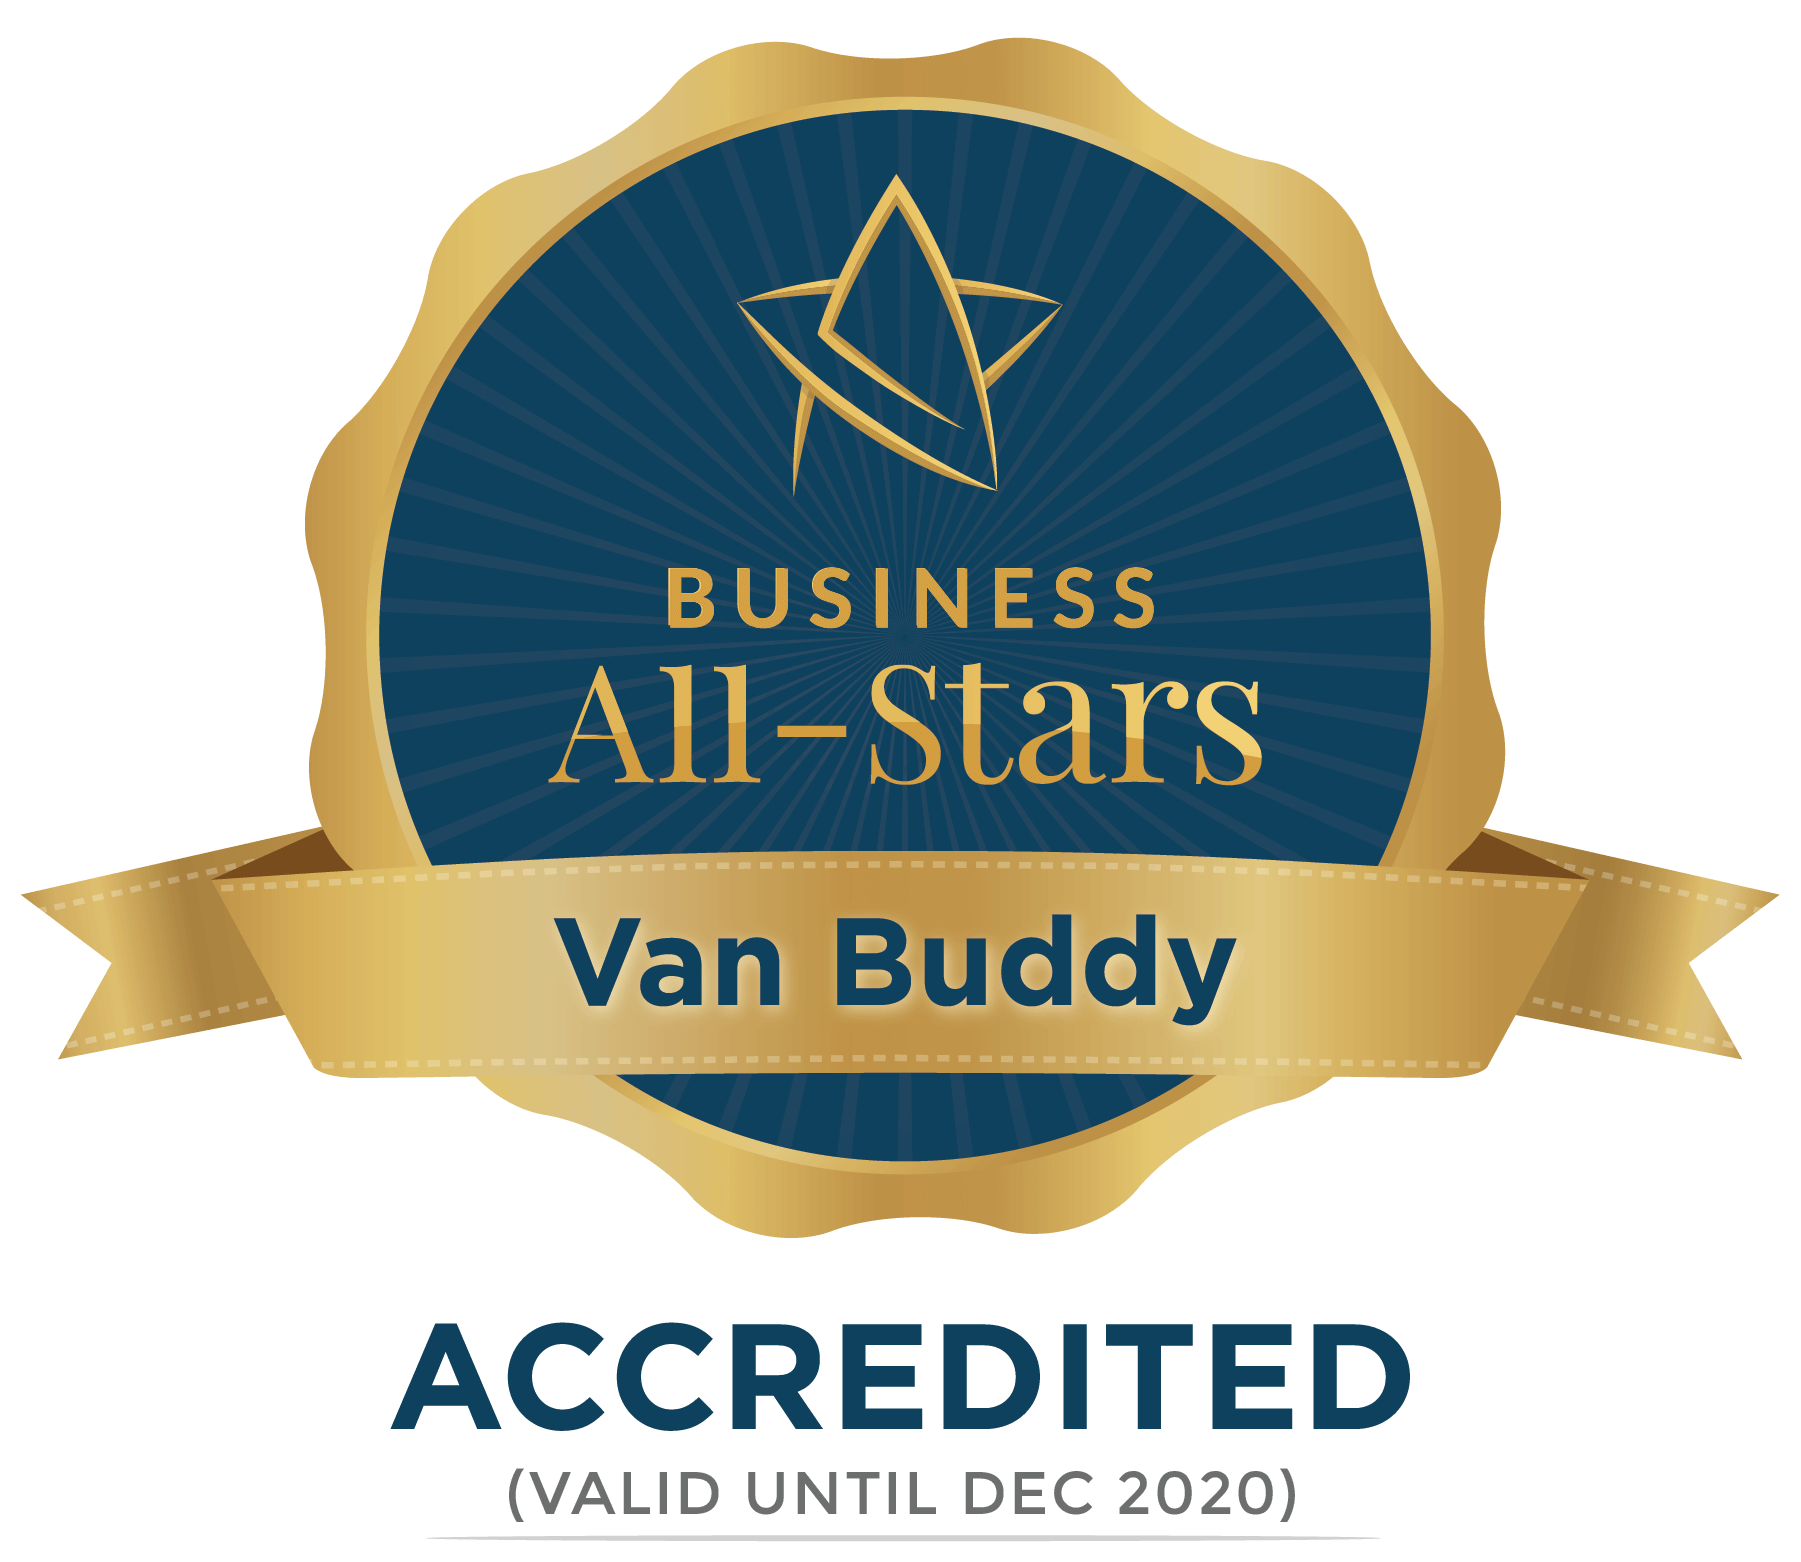 Van Buddy - Business All-Stars Accreditation